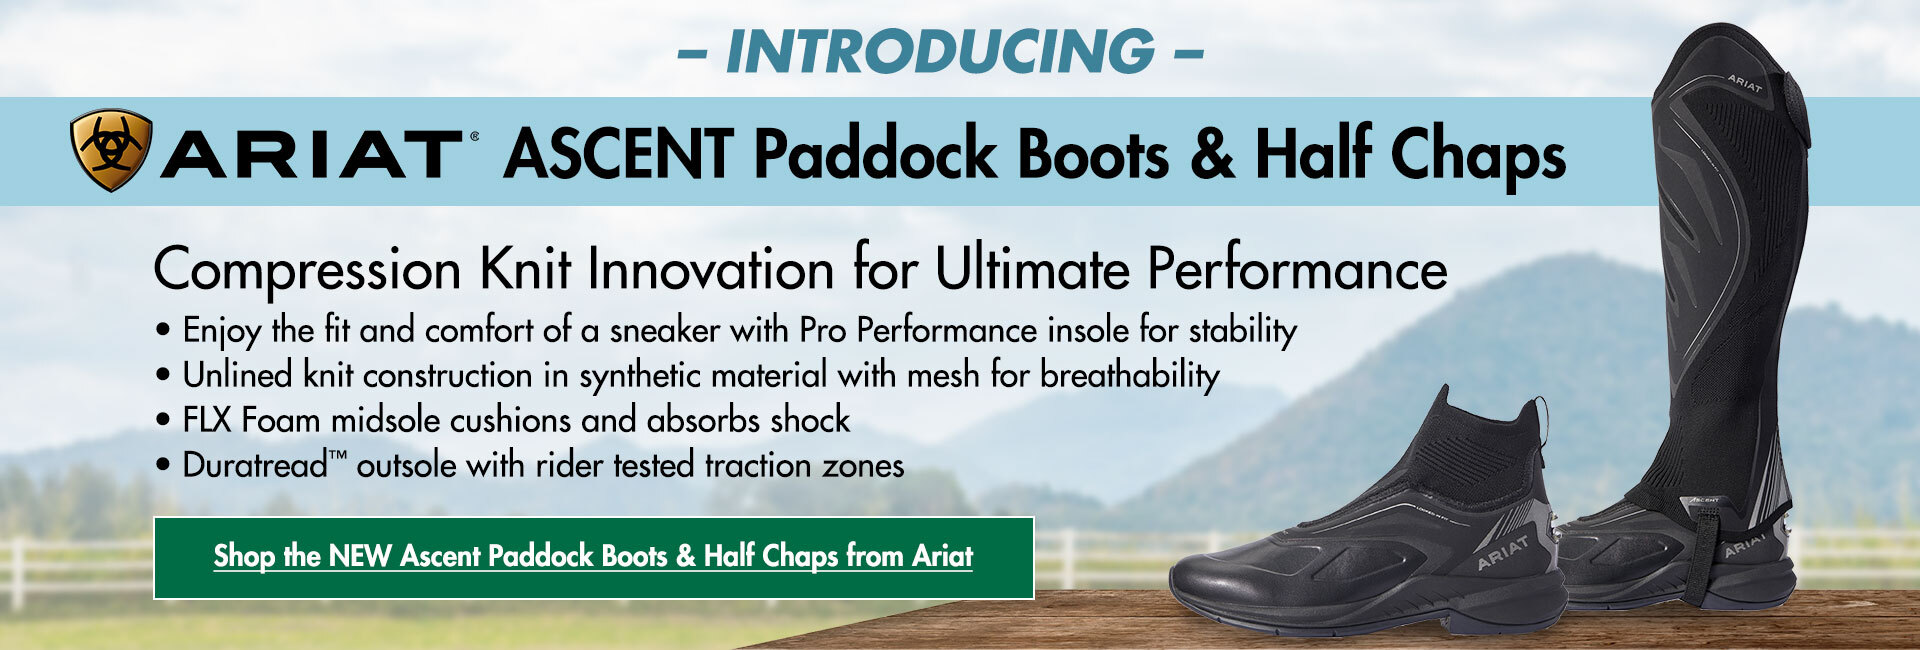 Introducing the Ariat Ascent Paddock Boot & Half Chaps